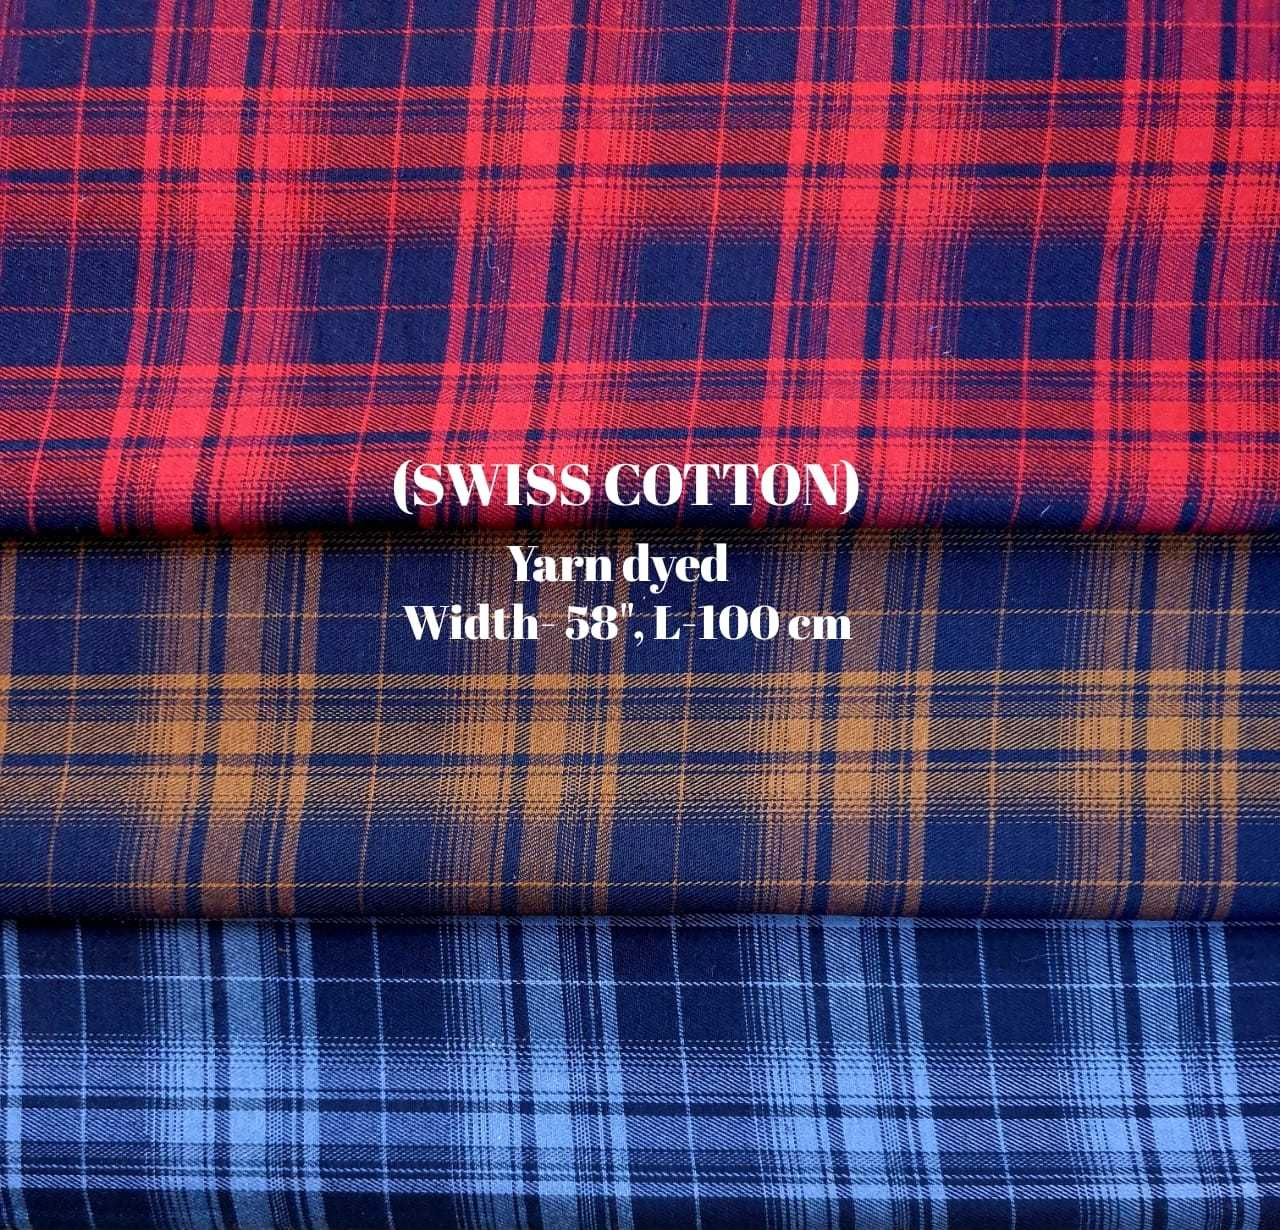 Swiss cotton yarn dyed check fabric